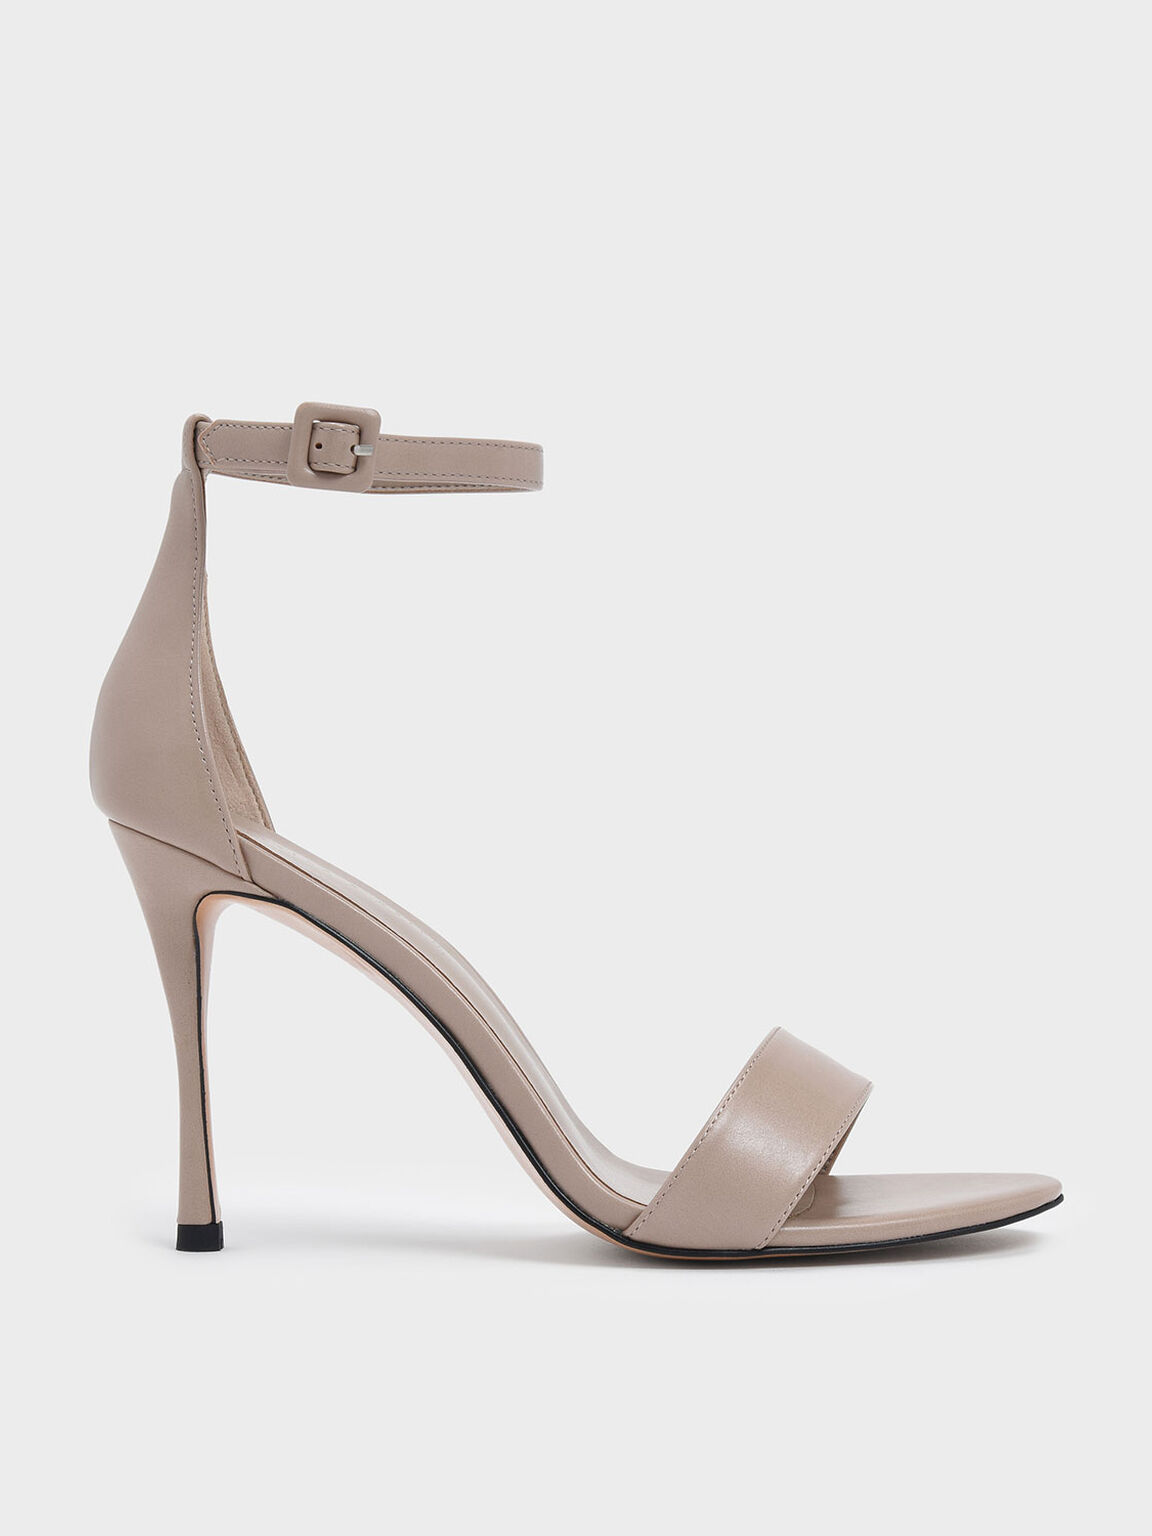 Ankle Strap Stiletto Heels, Nude, hi-res